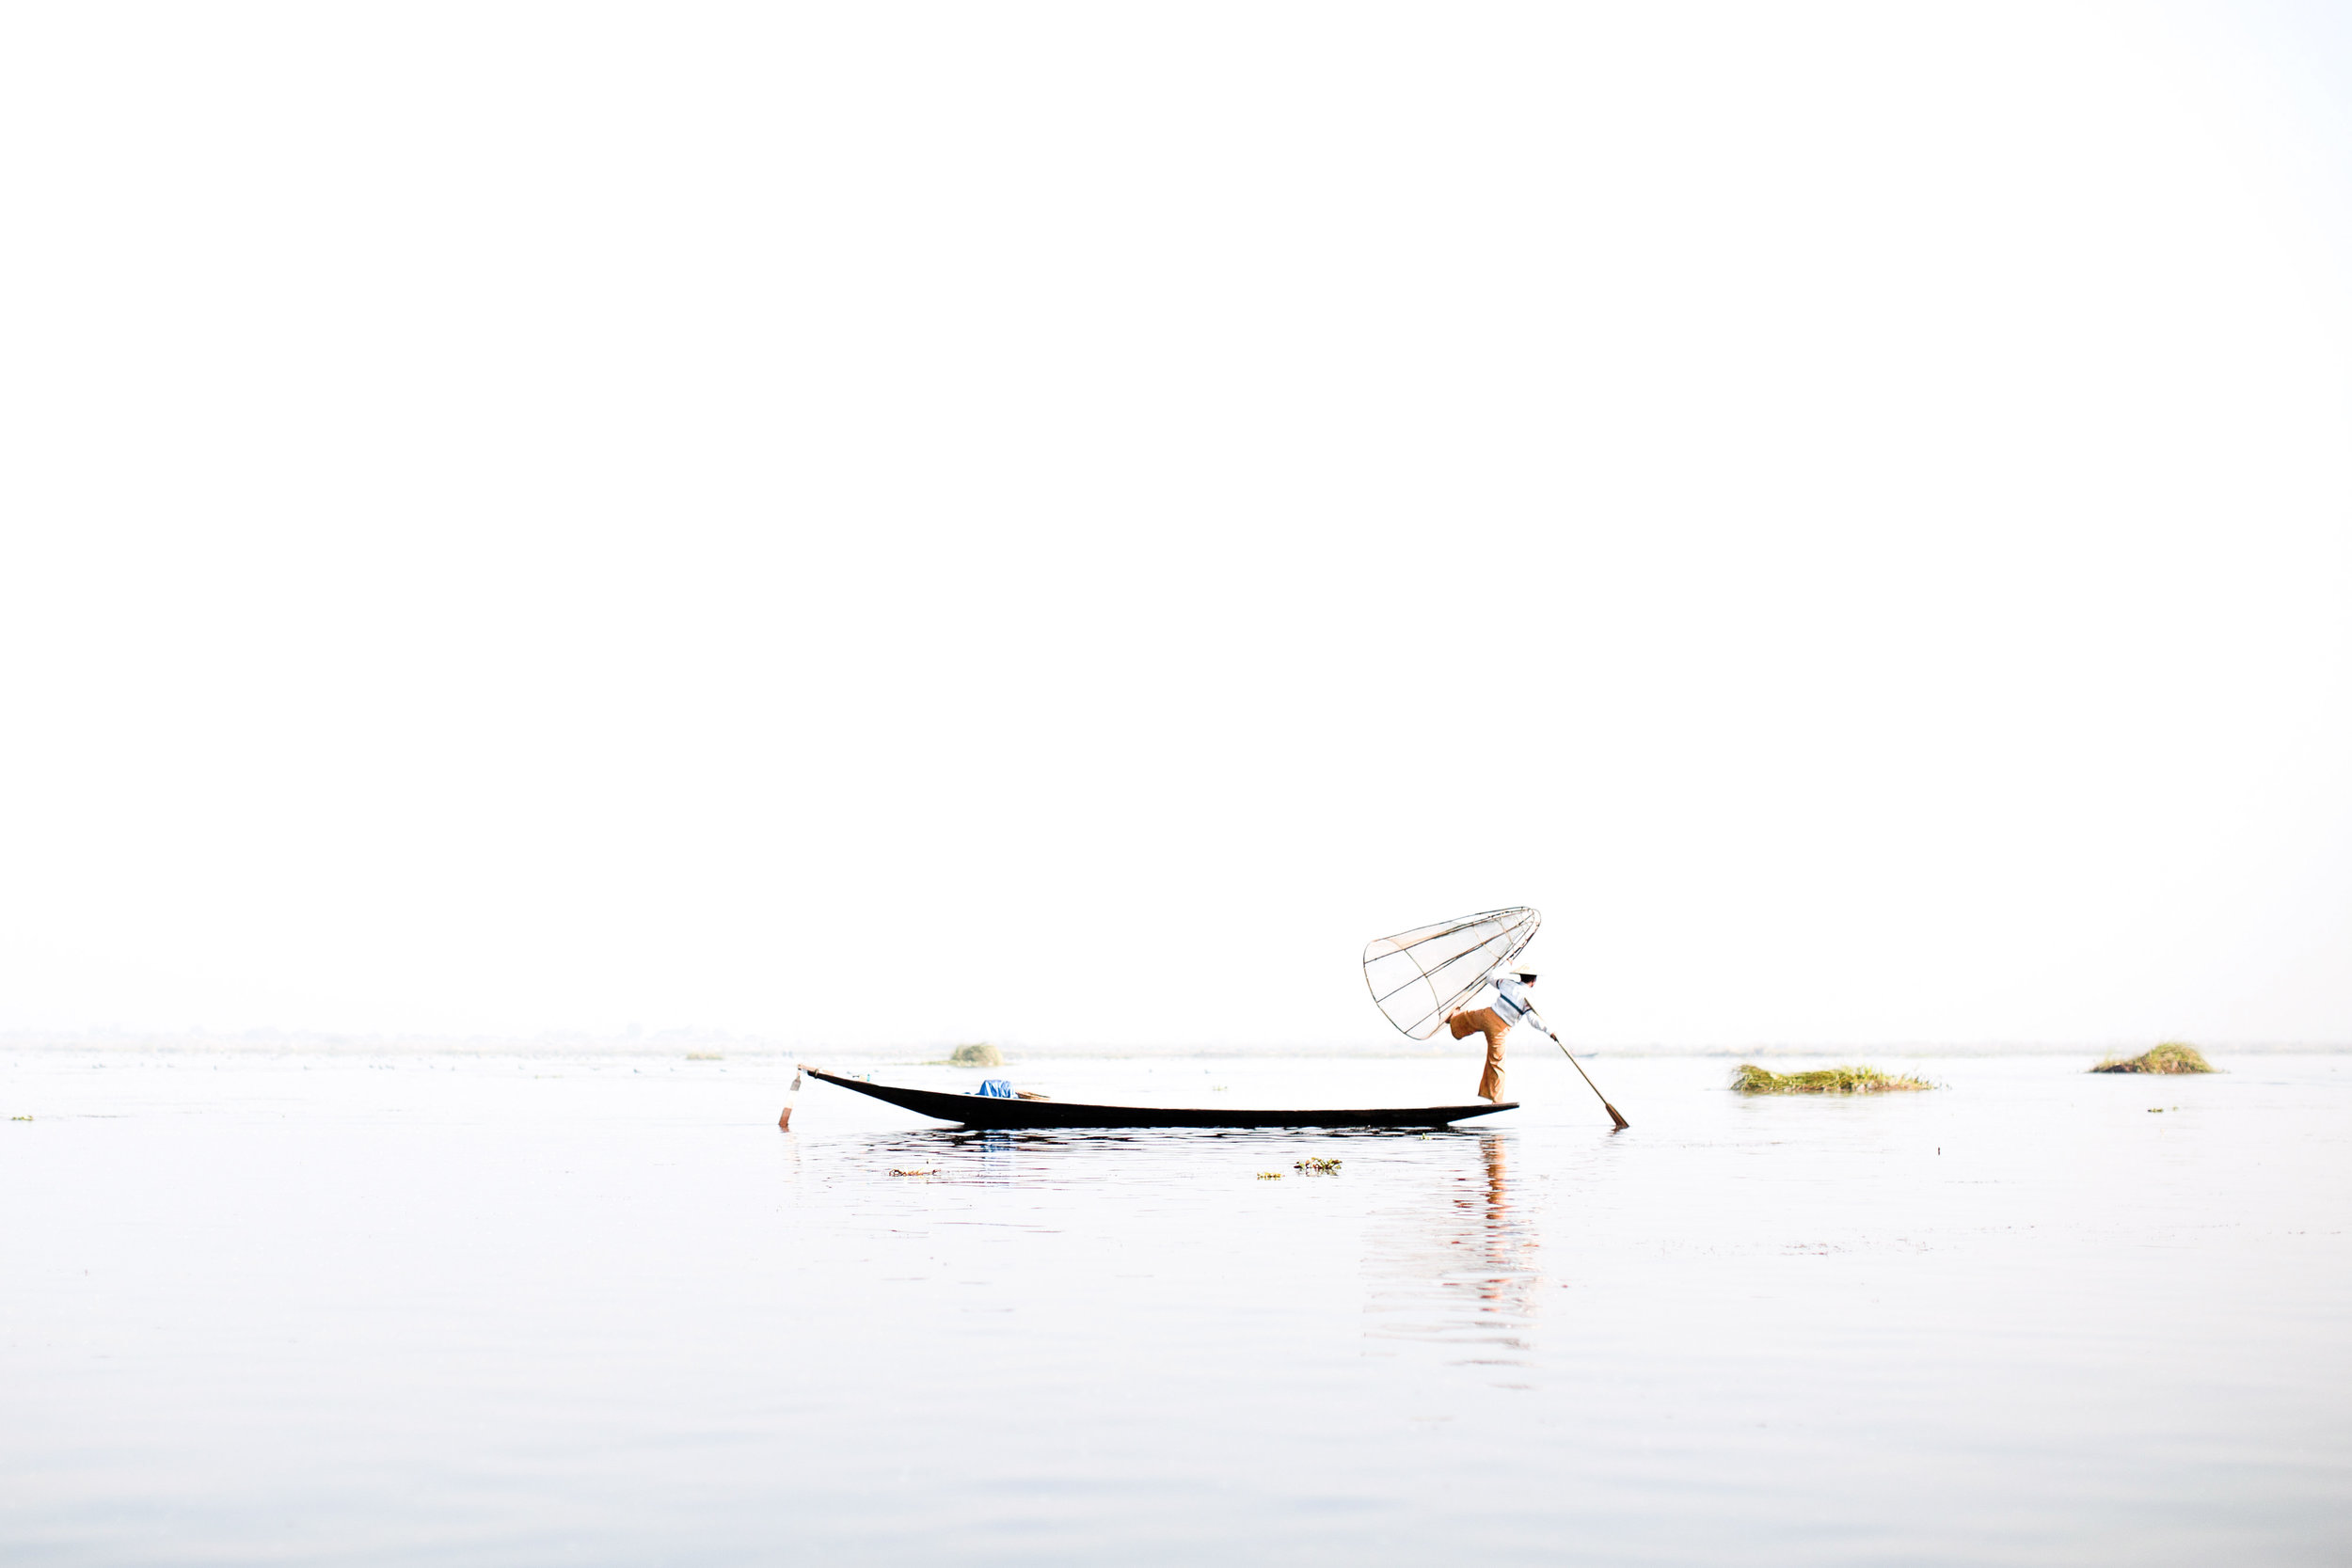 inle lake - A vast, serene lake home to the Intha people, praised for their unique fishing technique. Quiet floating villages dot the lake, holding some of Myanmar's best handmade crafts workshops. Beyond Inle lie the rolling hills of Shan State, populated by the unique tribal minorities of Myanmar.